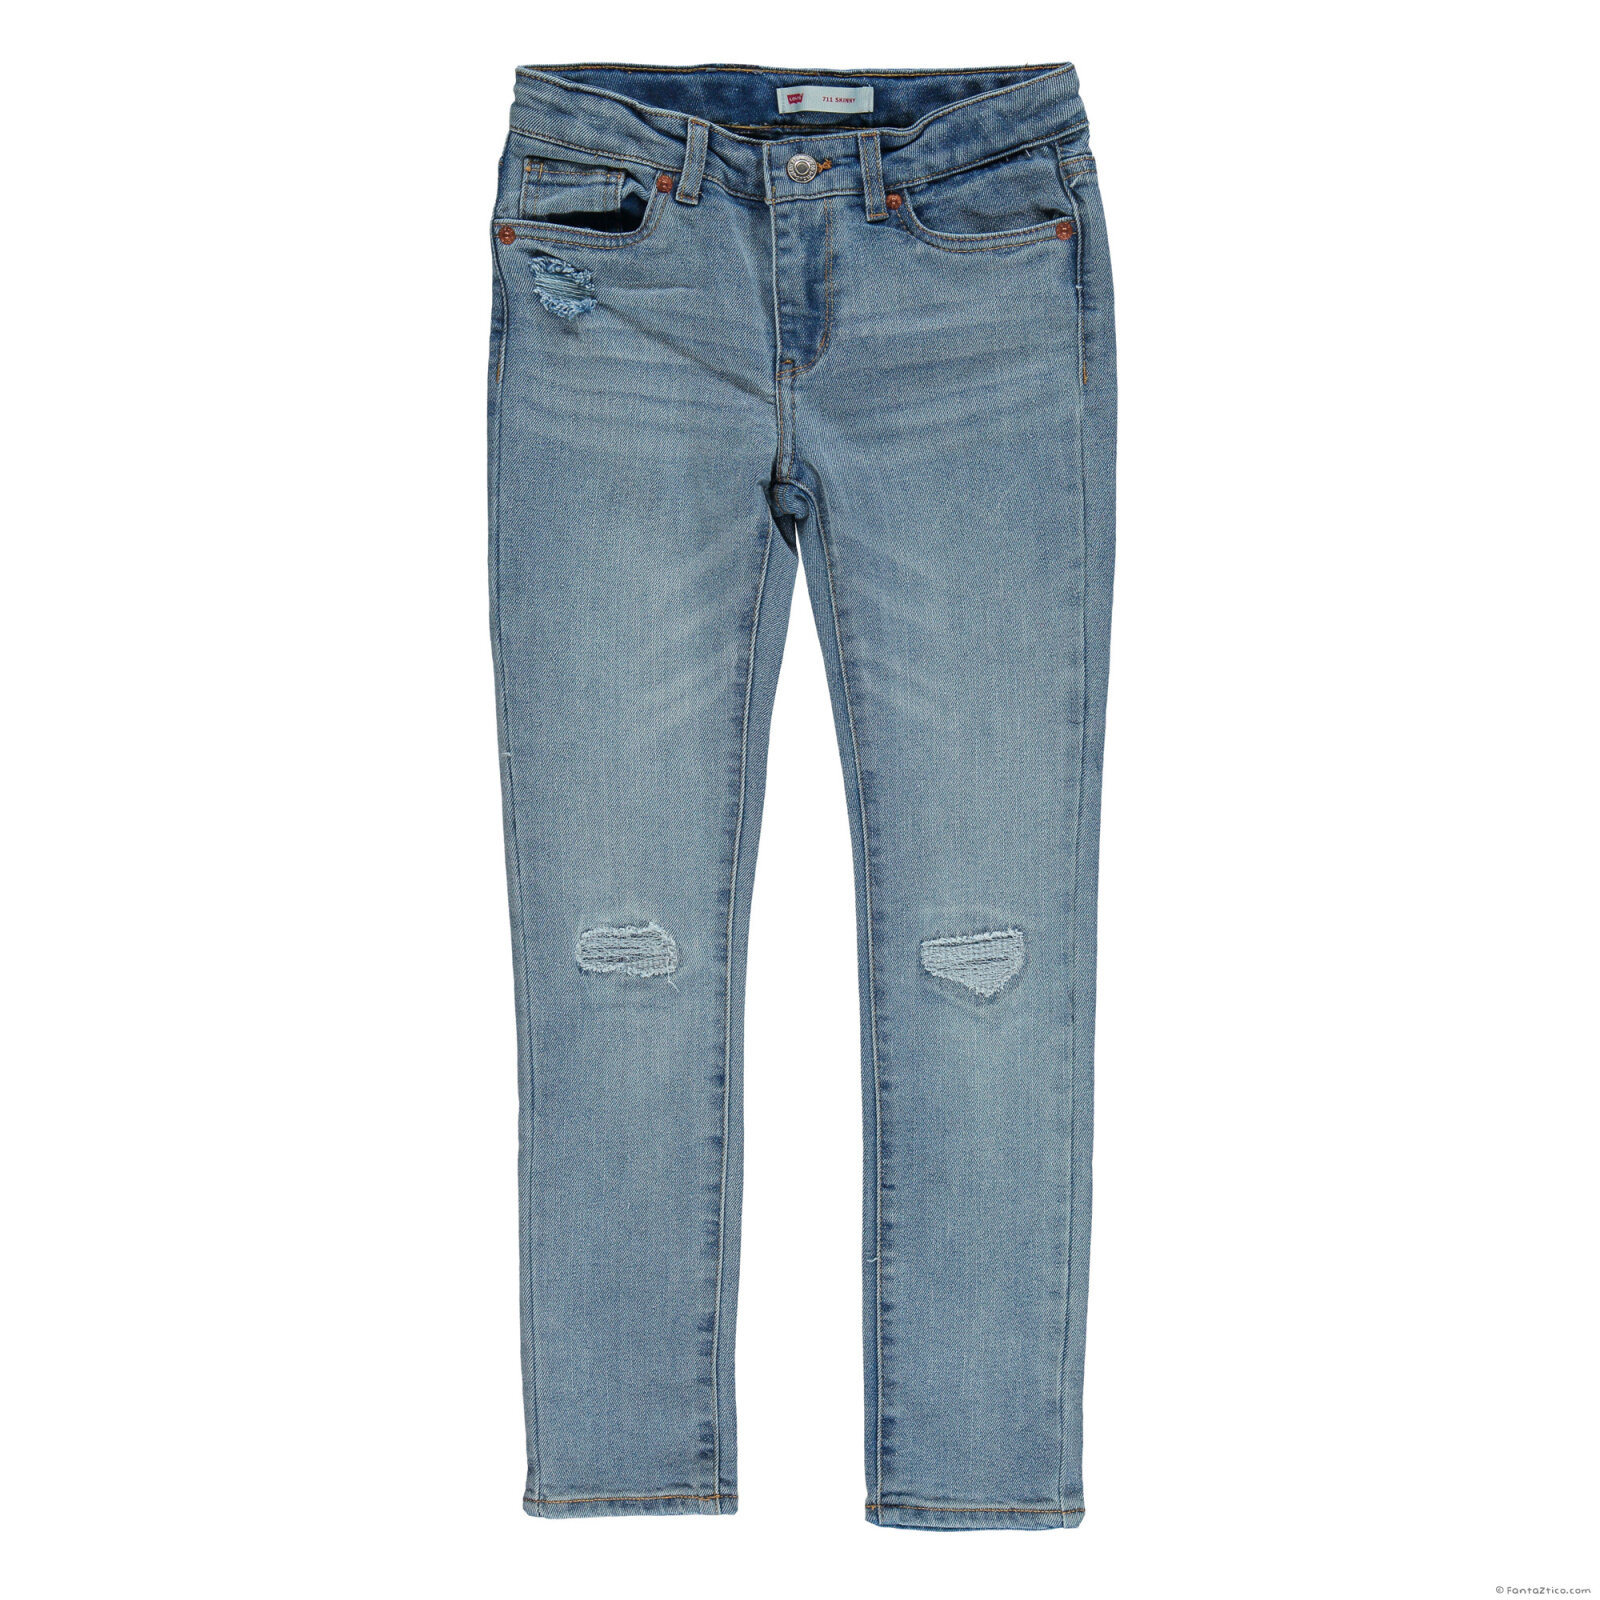 LEVIS jeans 711 skinny fit-3